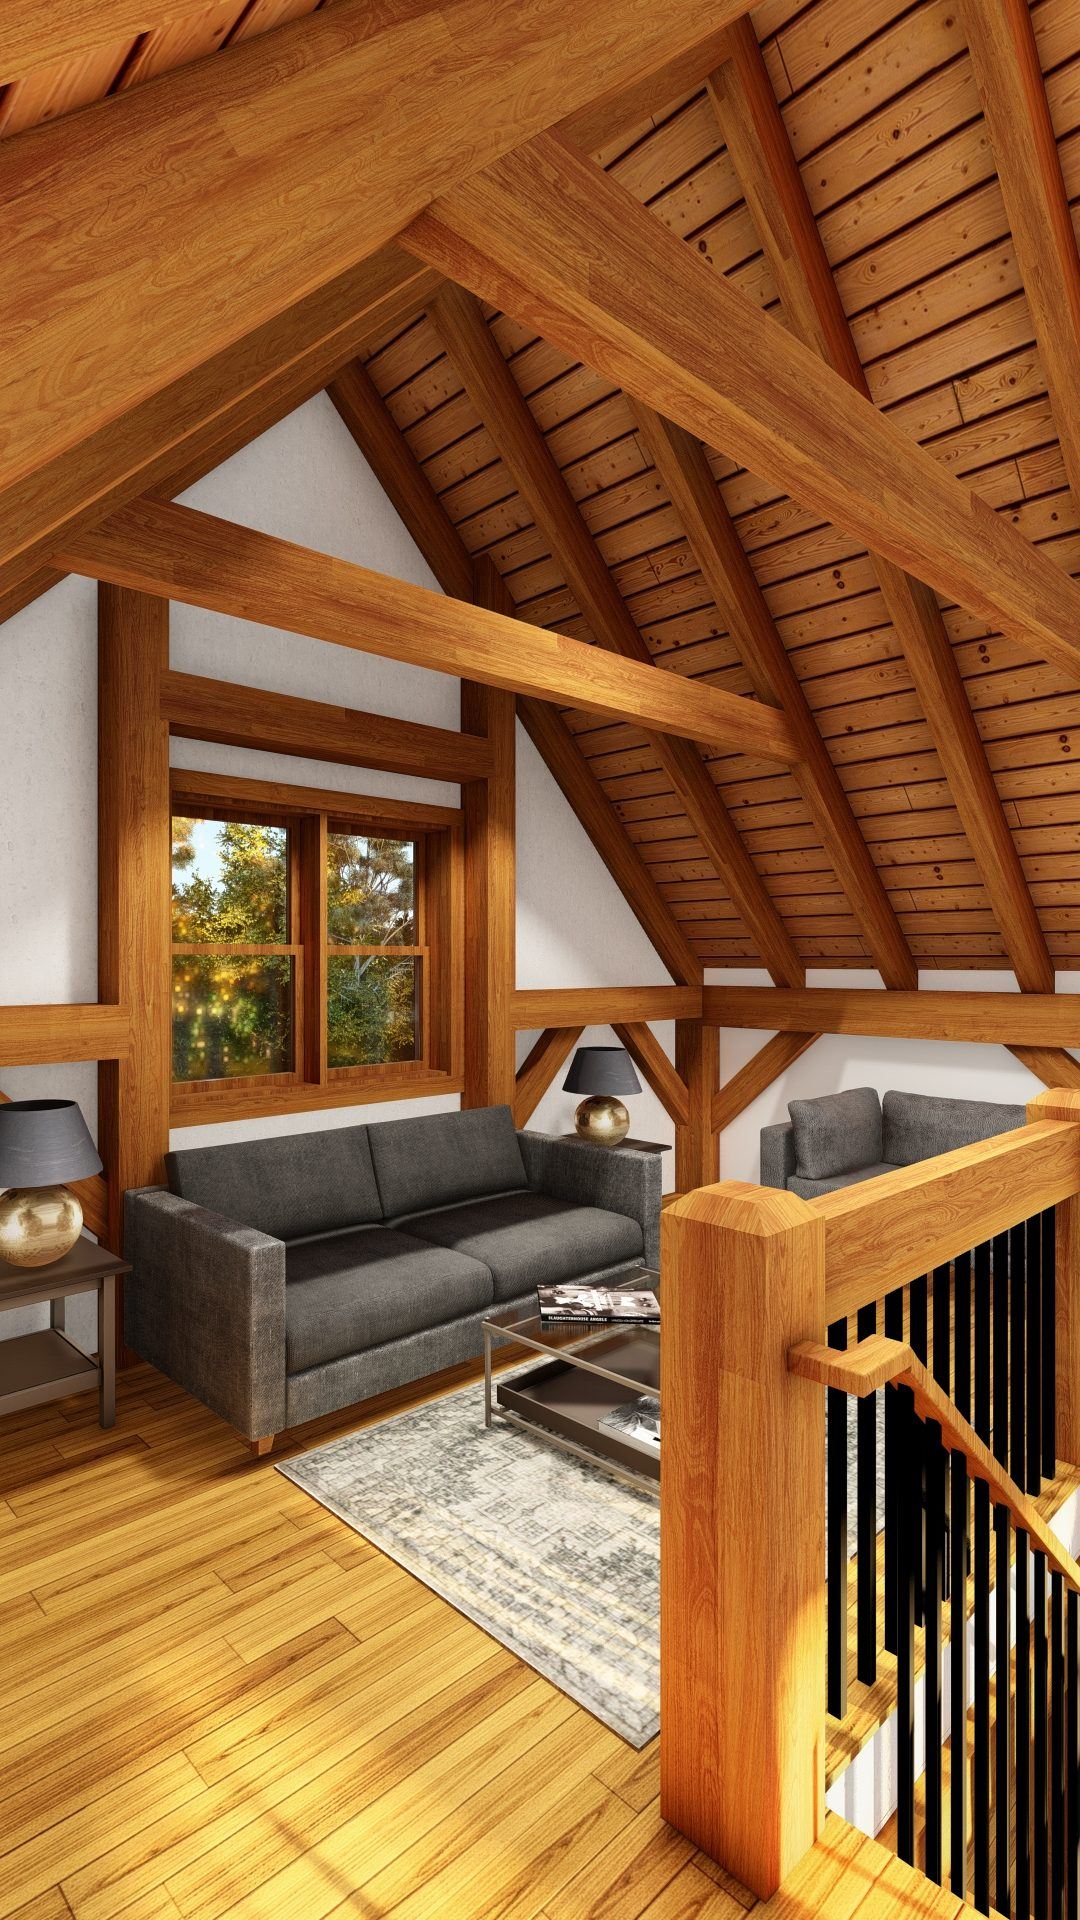 Normerica Timber Frames, House Plans, The Tobermory 3949, Interior, Second Floor Loft